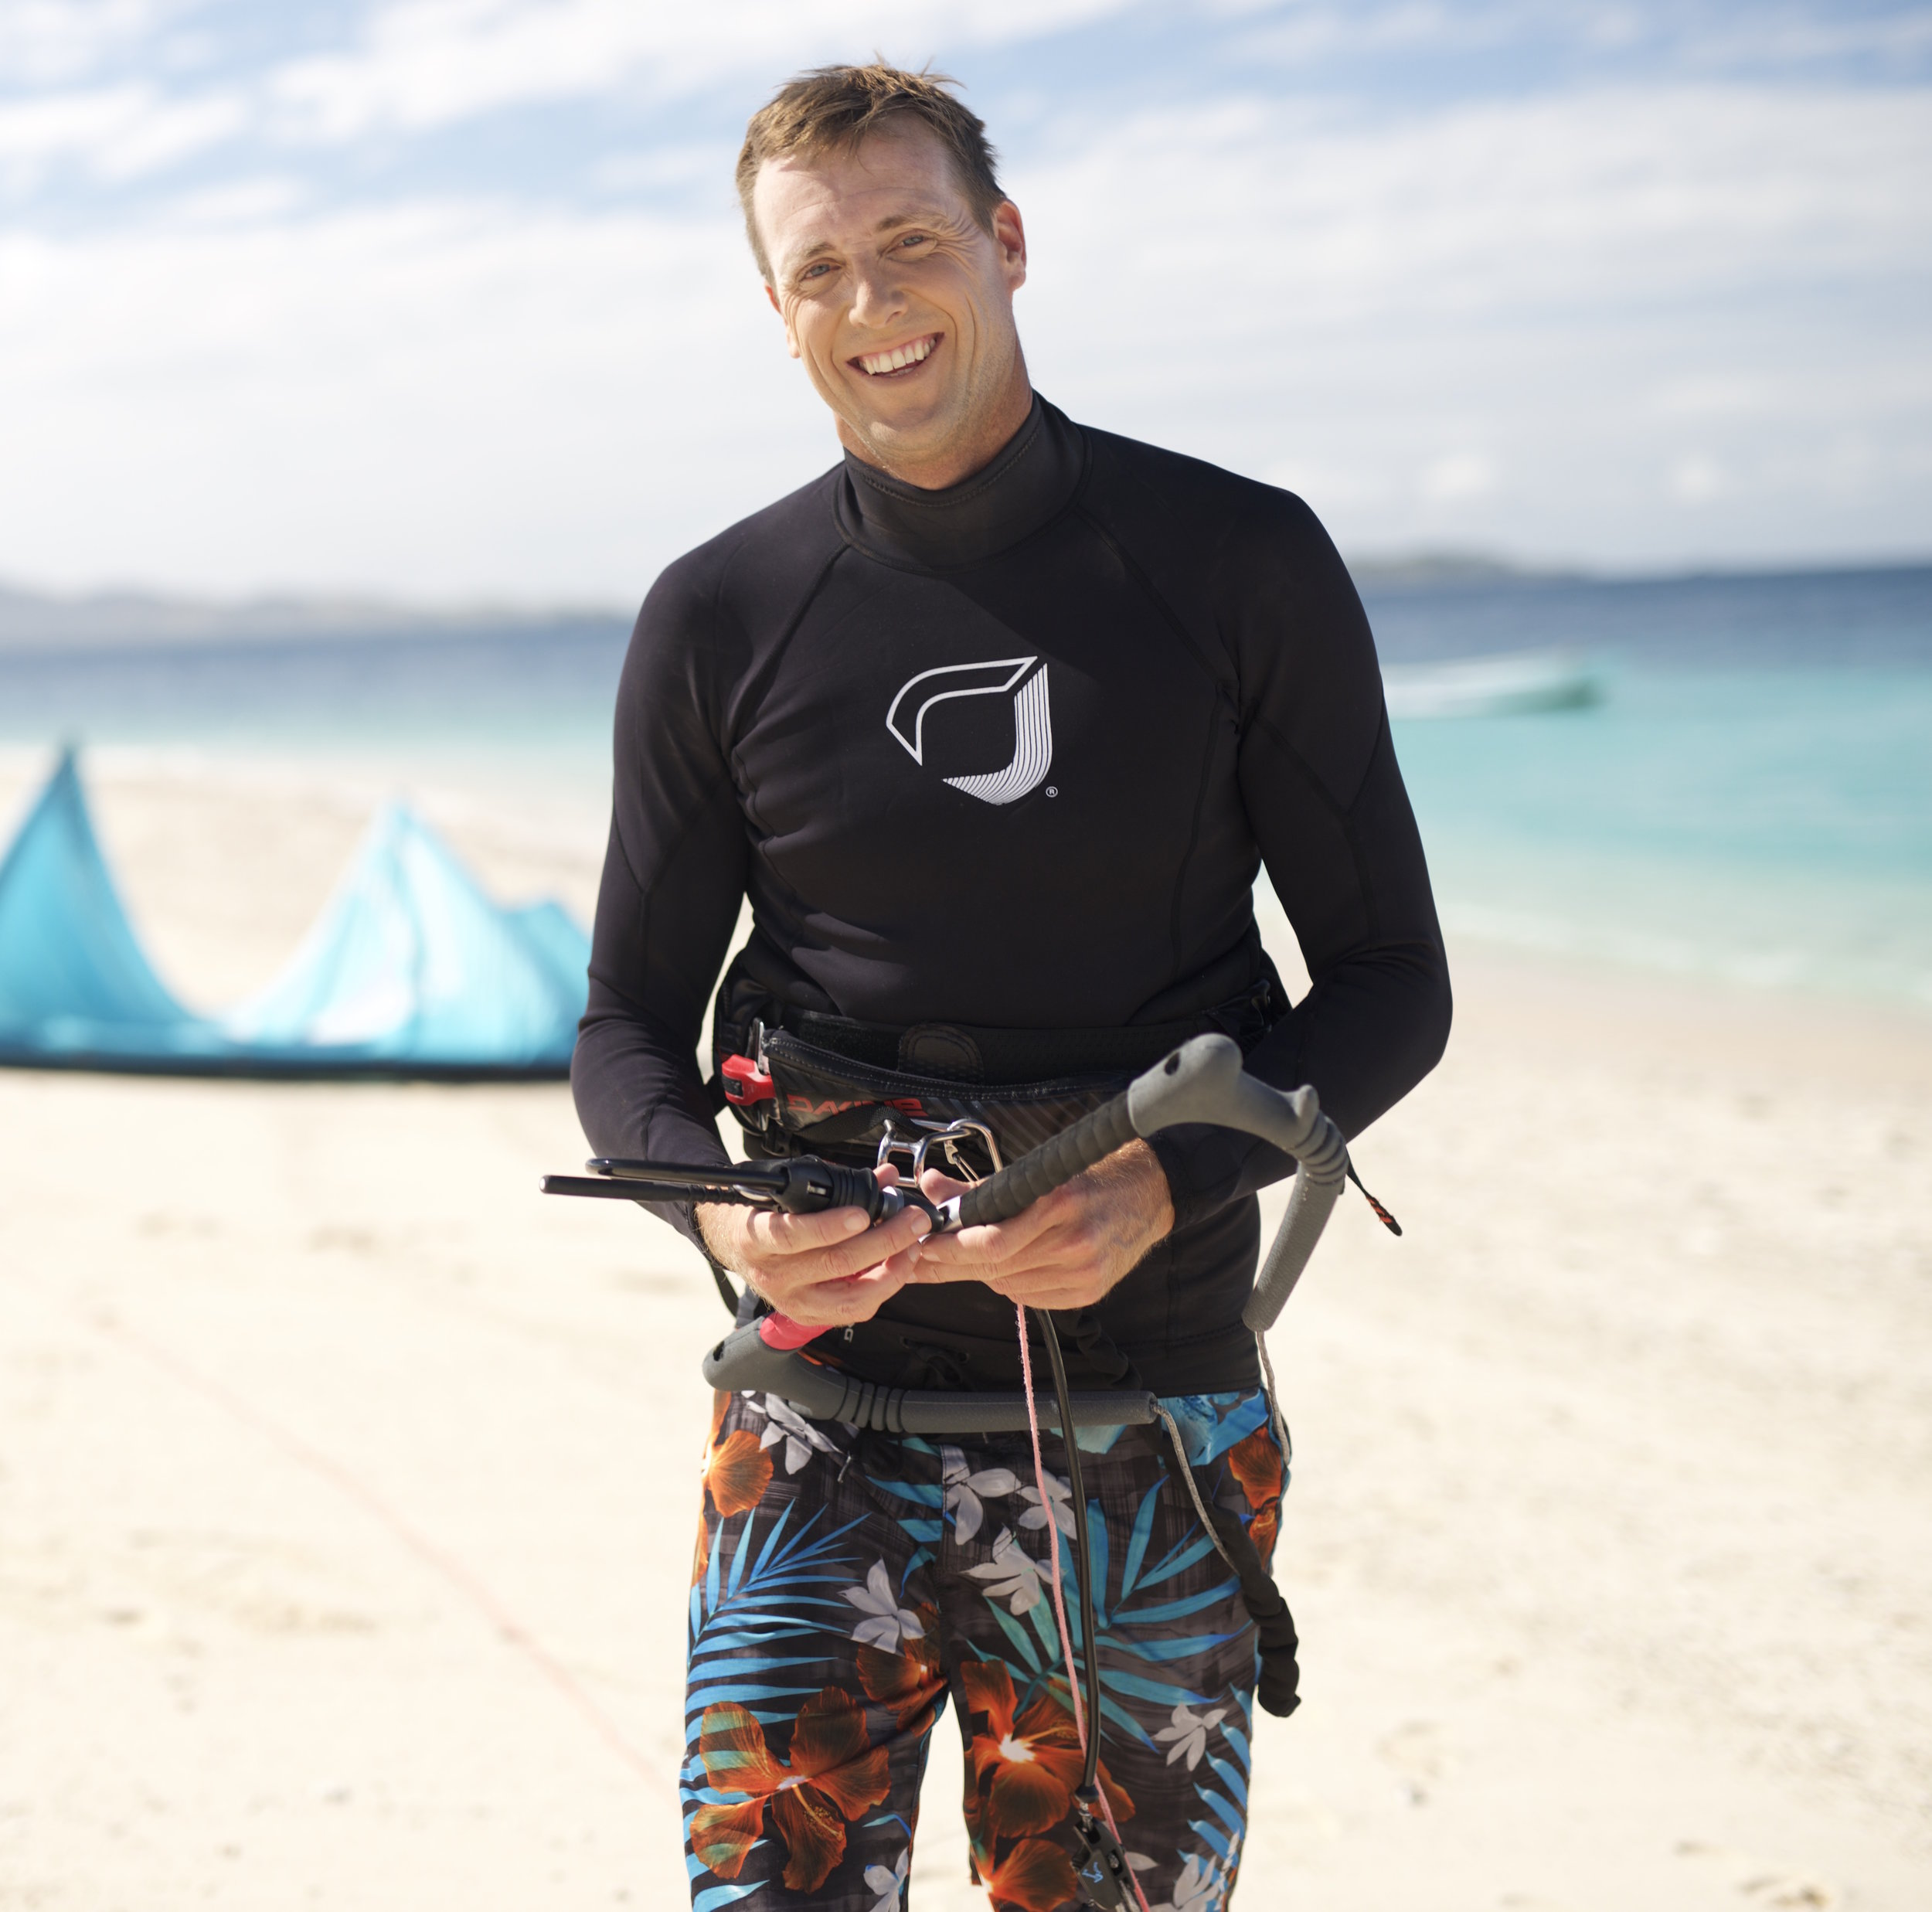 Ben Wilson - Owner and co-founder of BWSURF, Ben Wilson has been kiting since the beginning. Ben was introduced to kiting around the new millennium while he was working on Namotu Island in Fiji. During winters he was always frustrated by trade winds, which meant afternoon surfing was rarely an option. One year some guests from Maui (Robby Naish & co.) visited and brought the latest in wind-riding technology - one of the original 2 line kites - and taught Ben the basics. After that the afternoons provided an opportunity to get out on the water where Ben practised on his surfboard, as it was all he had. It was during this time he had a light bulb moment, and realised kiting was a way to travel the world and develop a career. At the time, when kiting was only new, freestyle was the only commercial avenue so Ben followed the professional competition circuit for years before eventually returning to ride waves on his surfboard. After that, he sought to create more specific equipment with Dano See and together they formed BenWilsonSurf. I guess the rest is history…